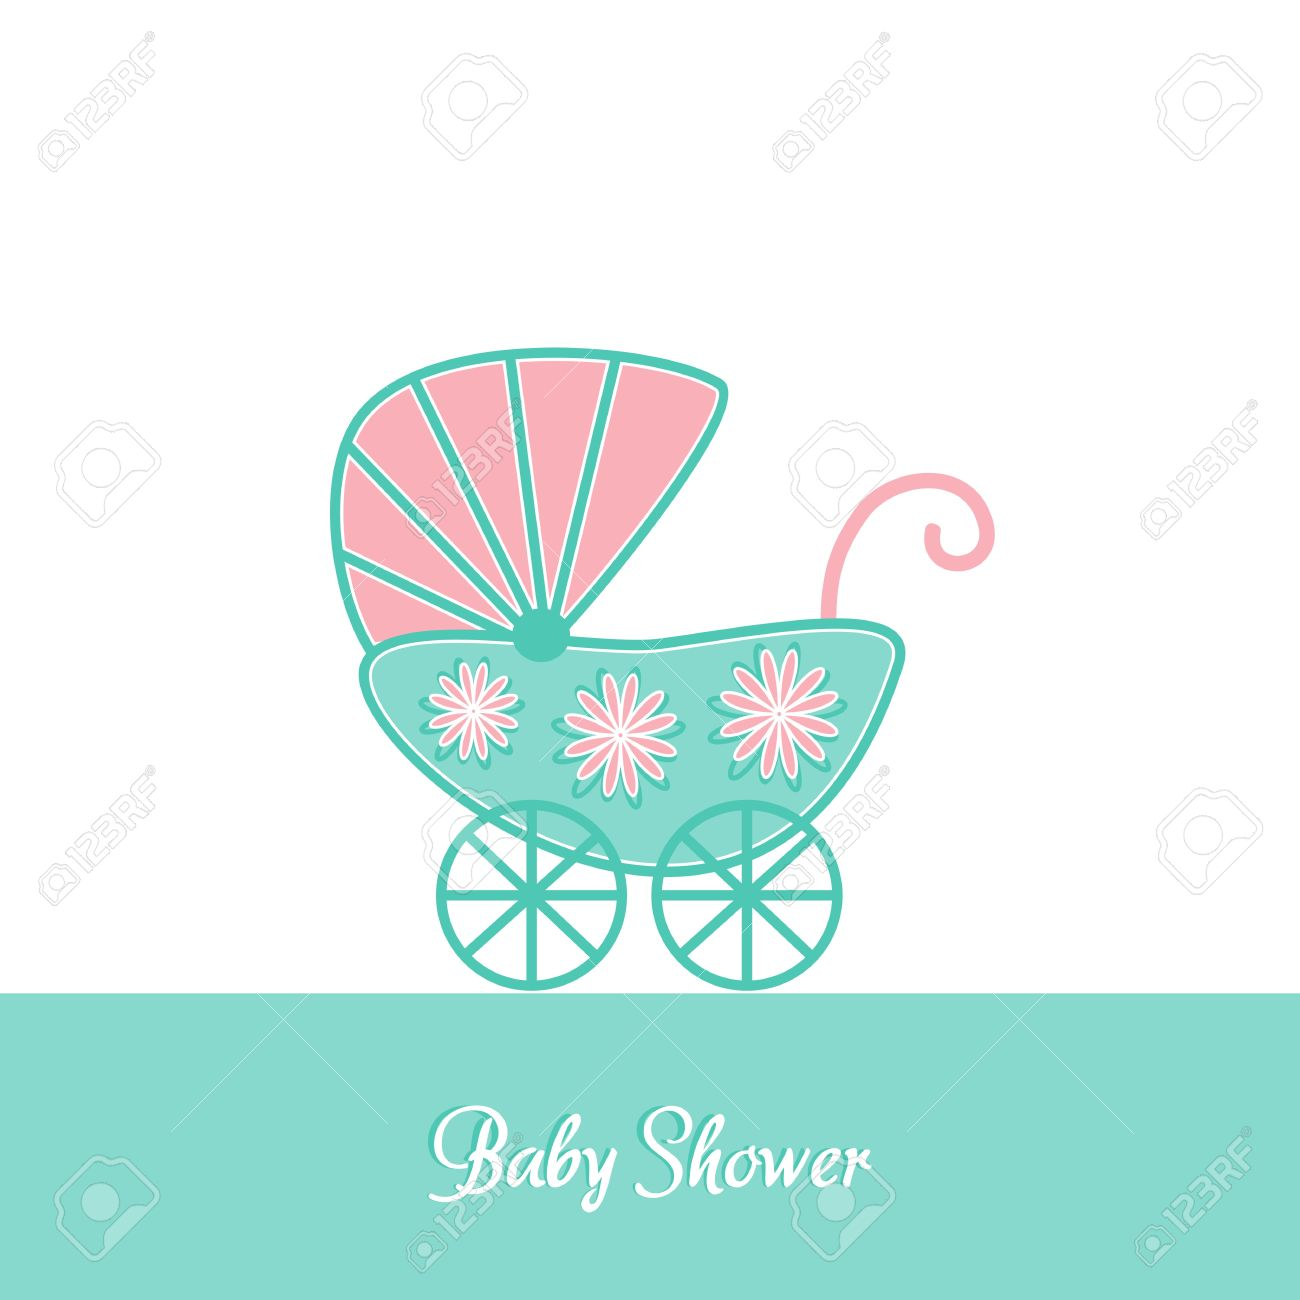 Baby Shower Vintage Invitation Card Template With Stroller Royalty ...